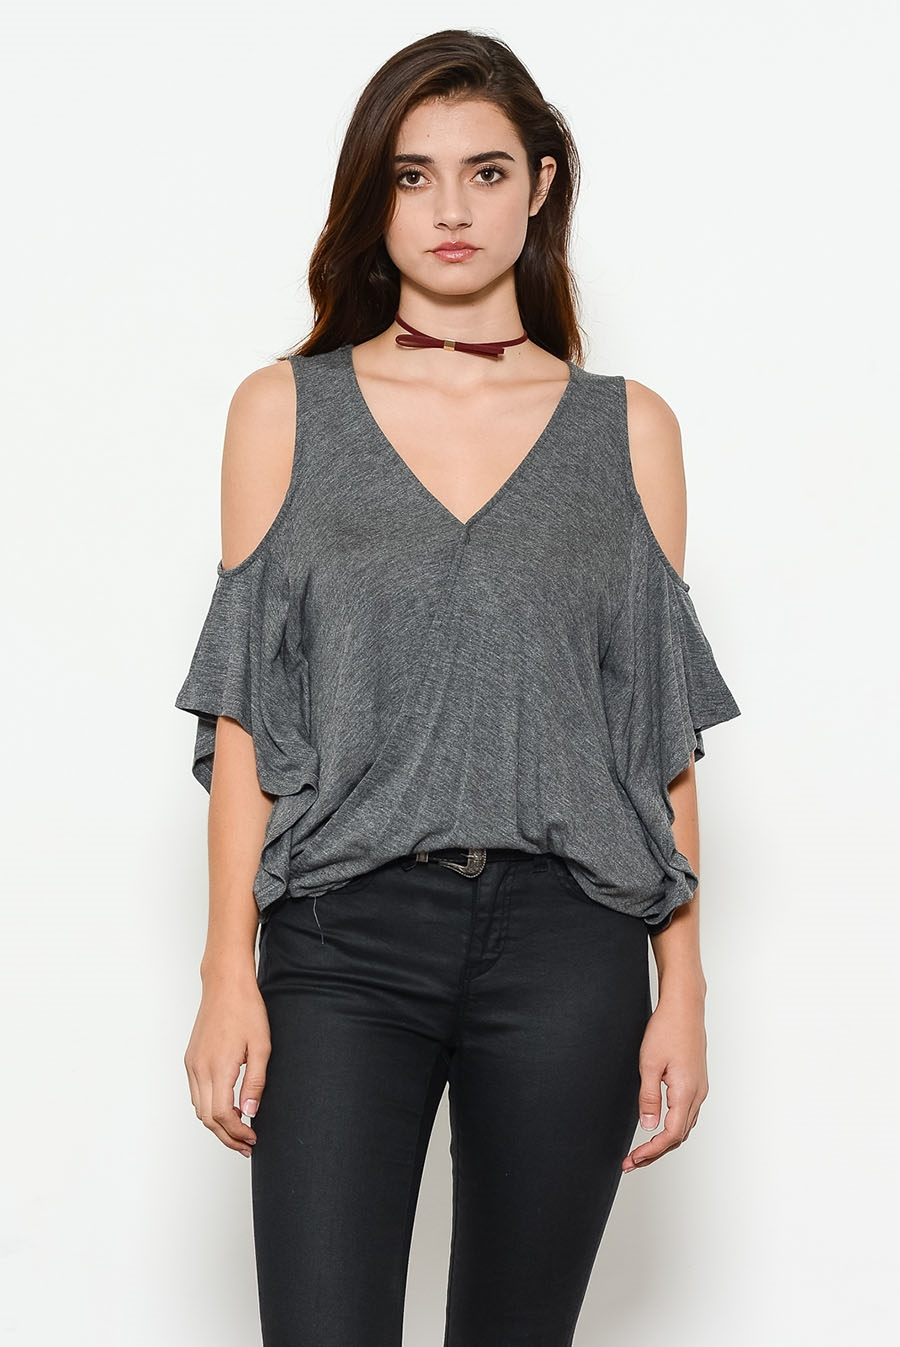 BABY RIB HOLE SHOULDER TOP - orangeshine.com